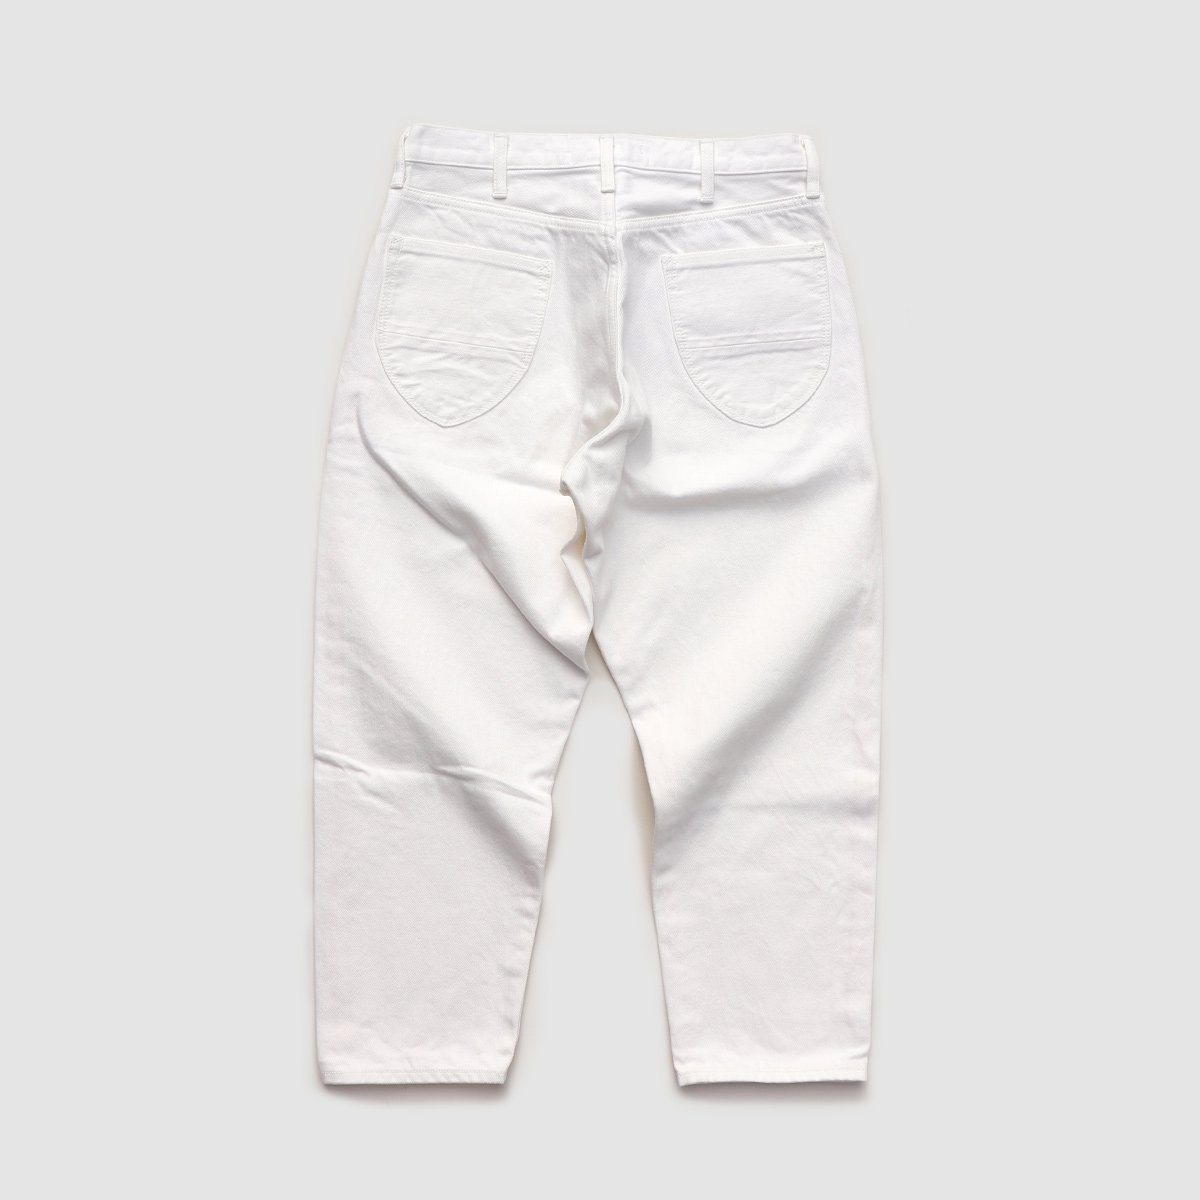 ALPHA DENIM ririzip ver. 詳細画像3